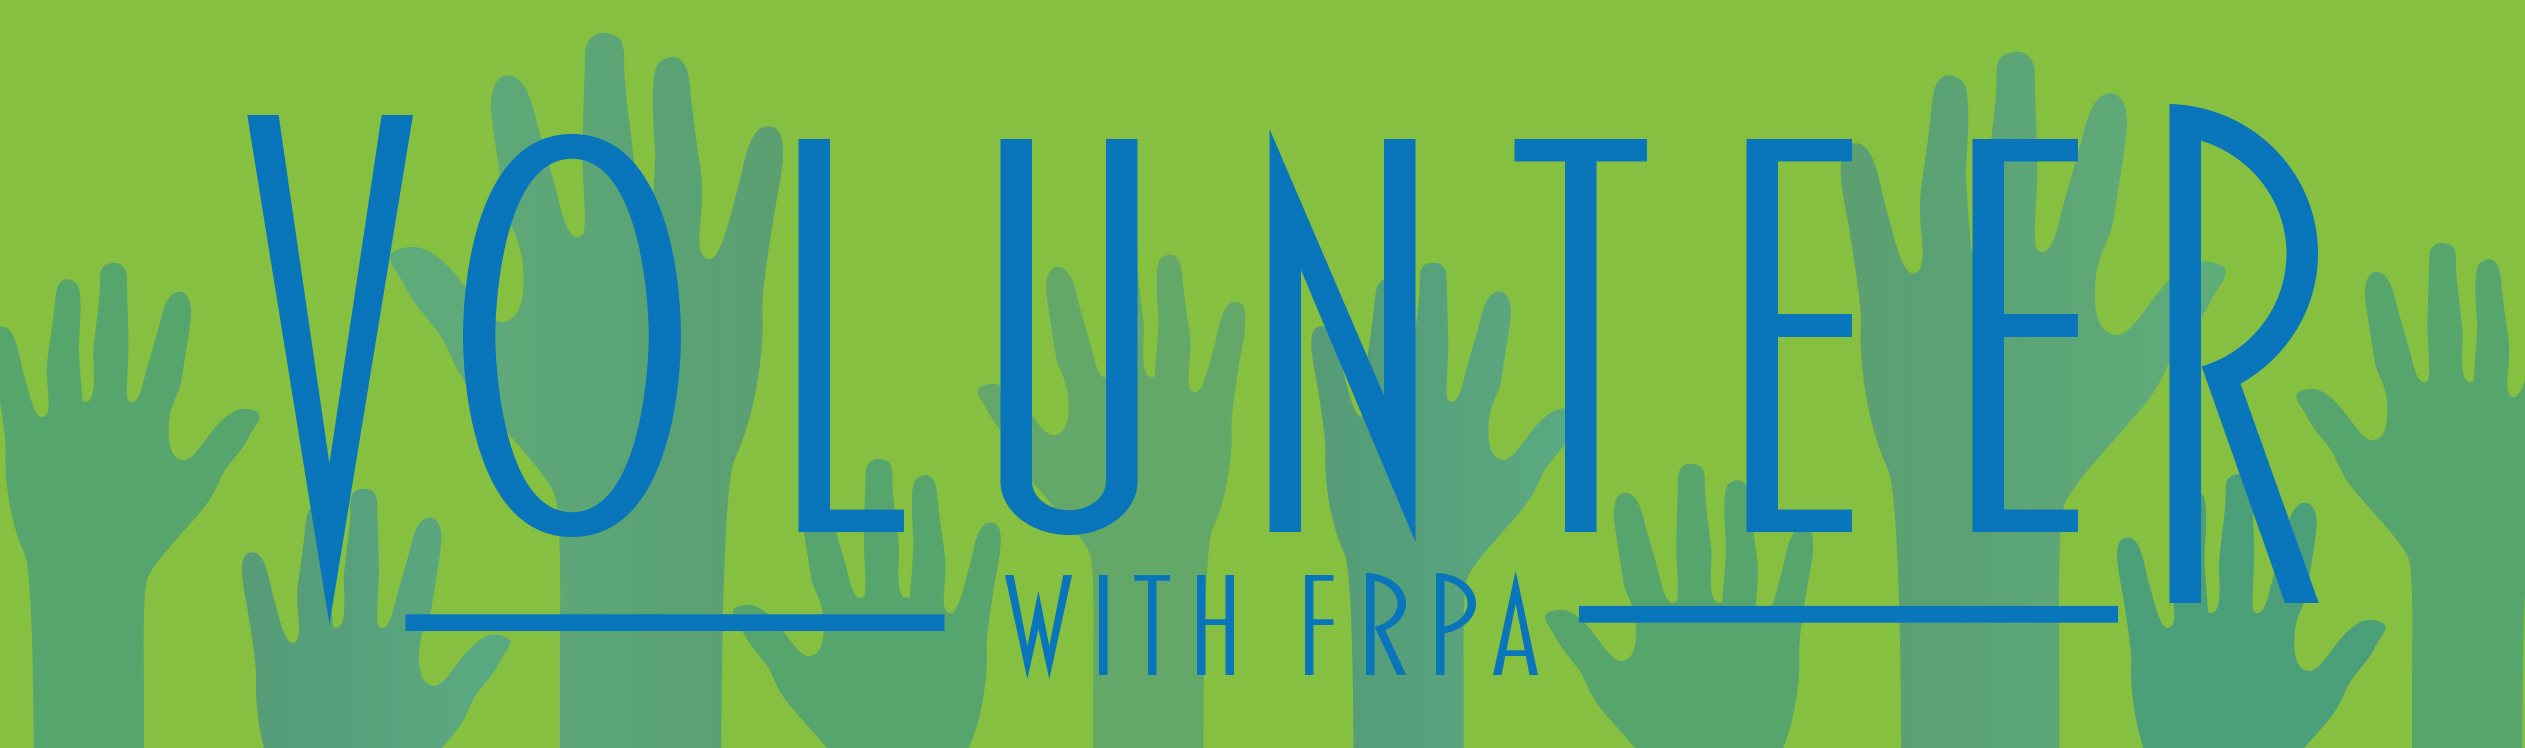 volunteer with FRPA